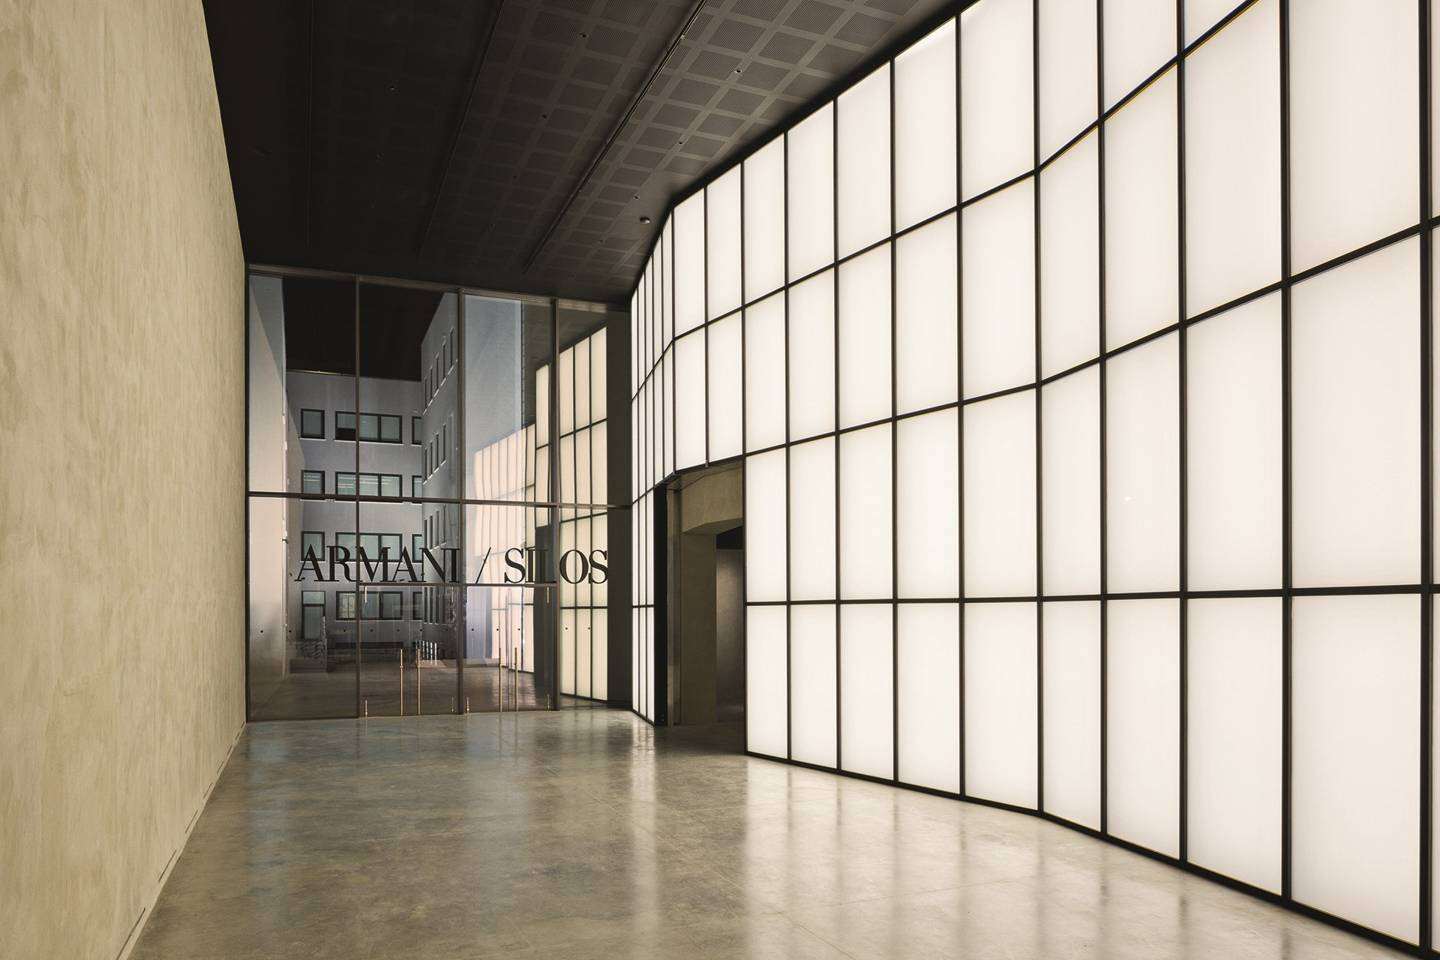 interior image of armani silos in milan with modern, industrial architecture